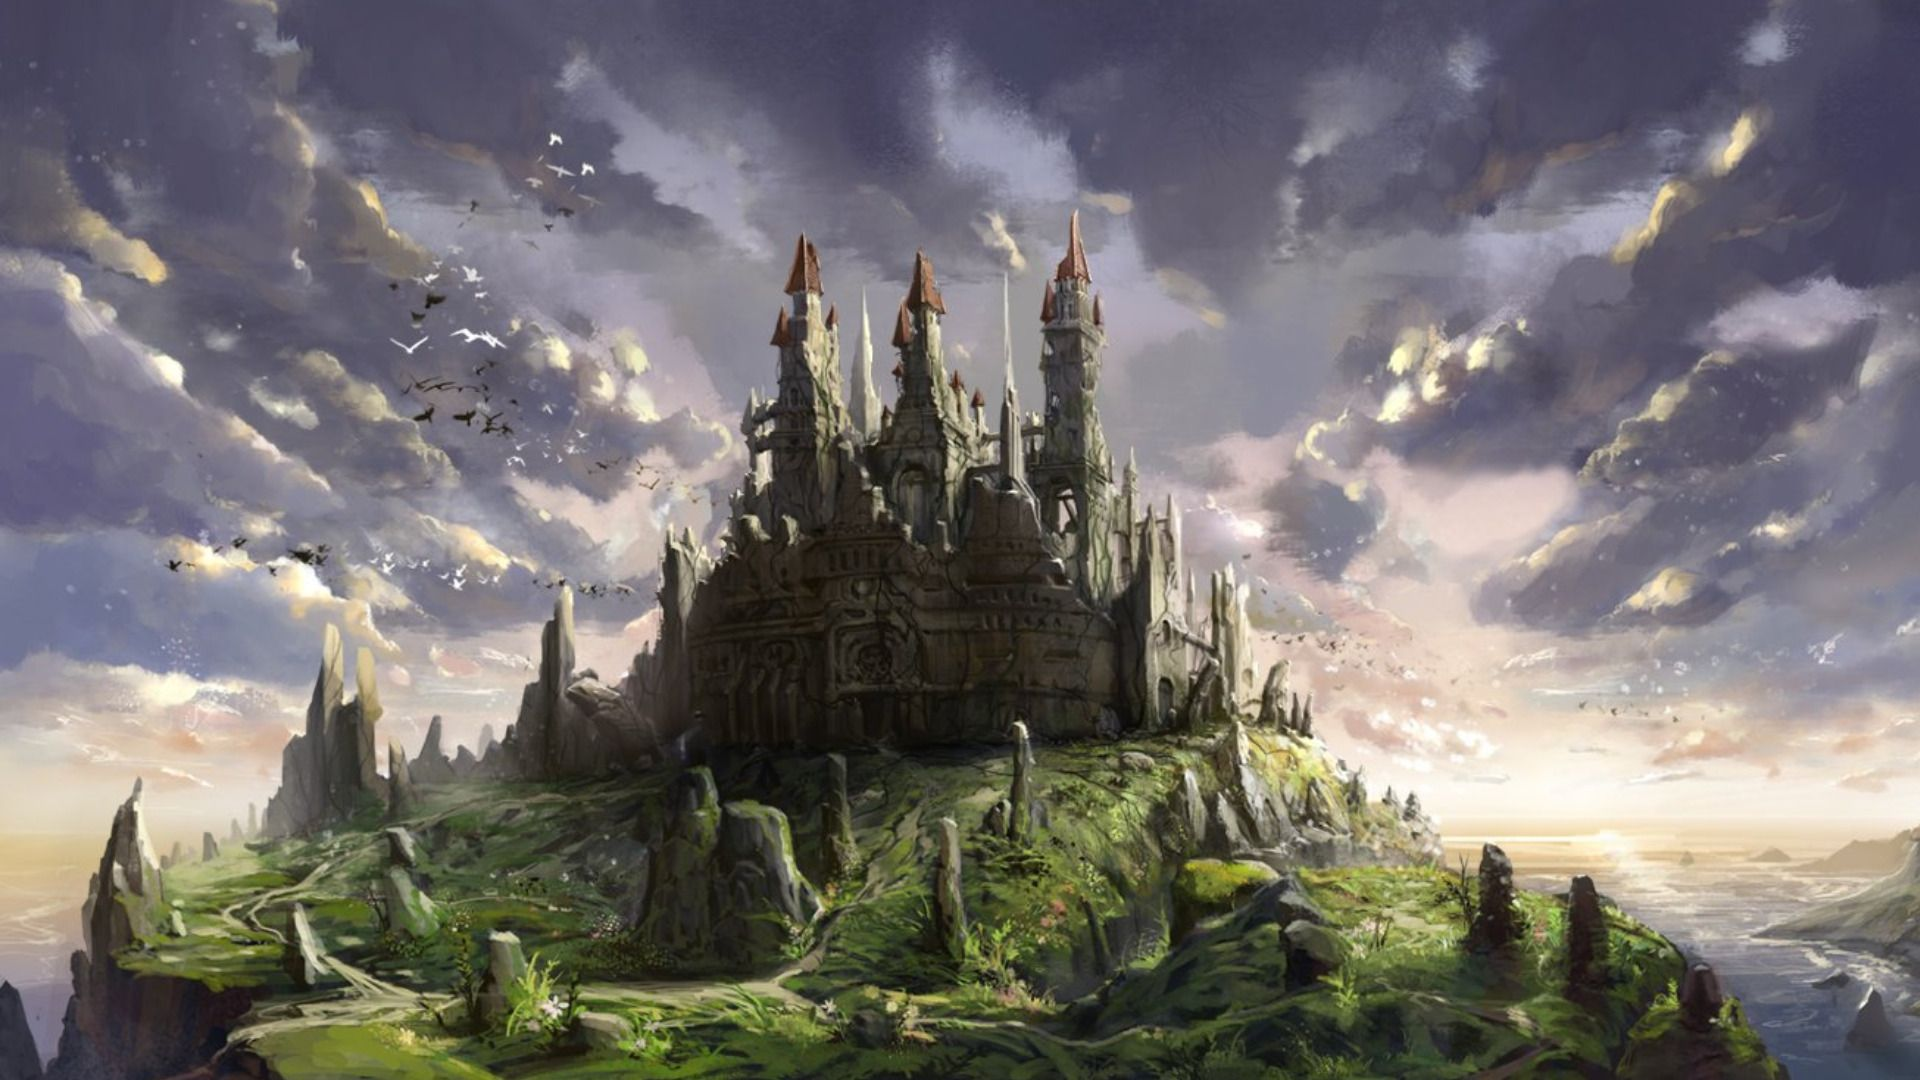 Fantasy Castle Artwork Coders Wallpaper Abyss Everything